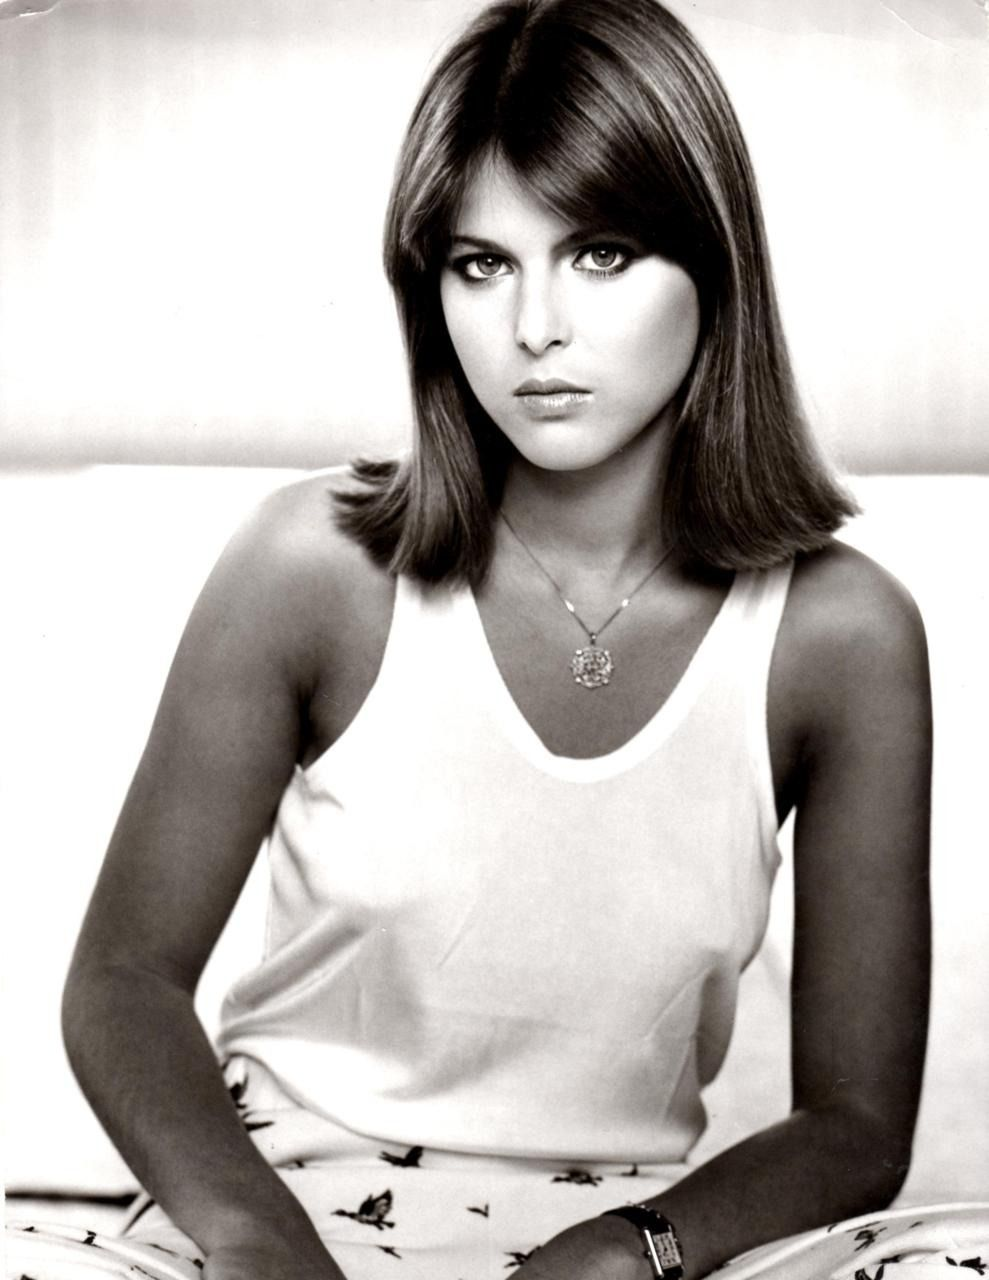 Forum on this topic: Rita Taggart, catherine-oxenberg-born-september-22-1961-age/